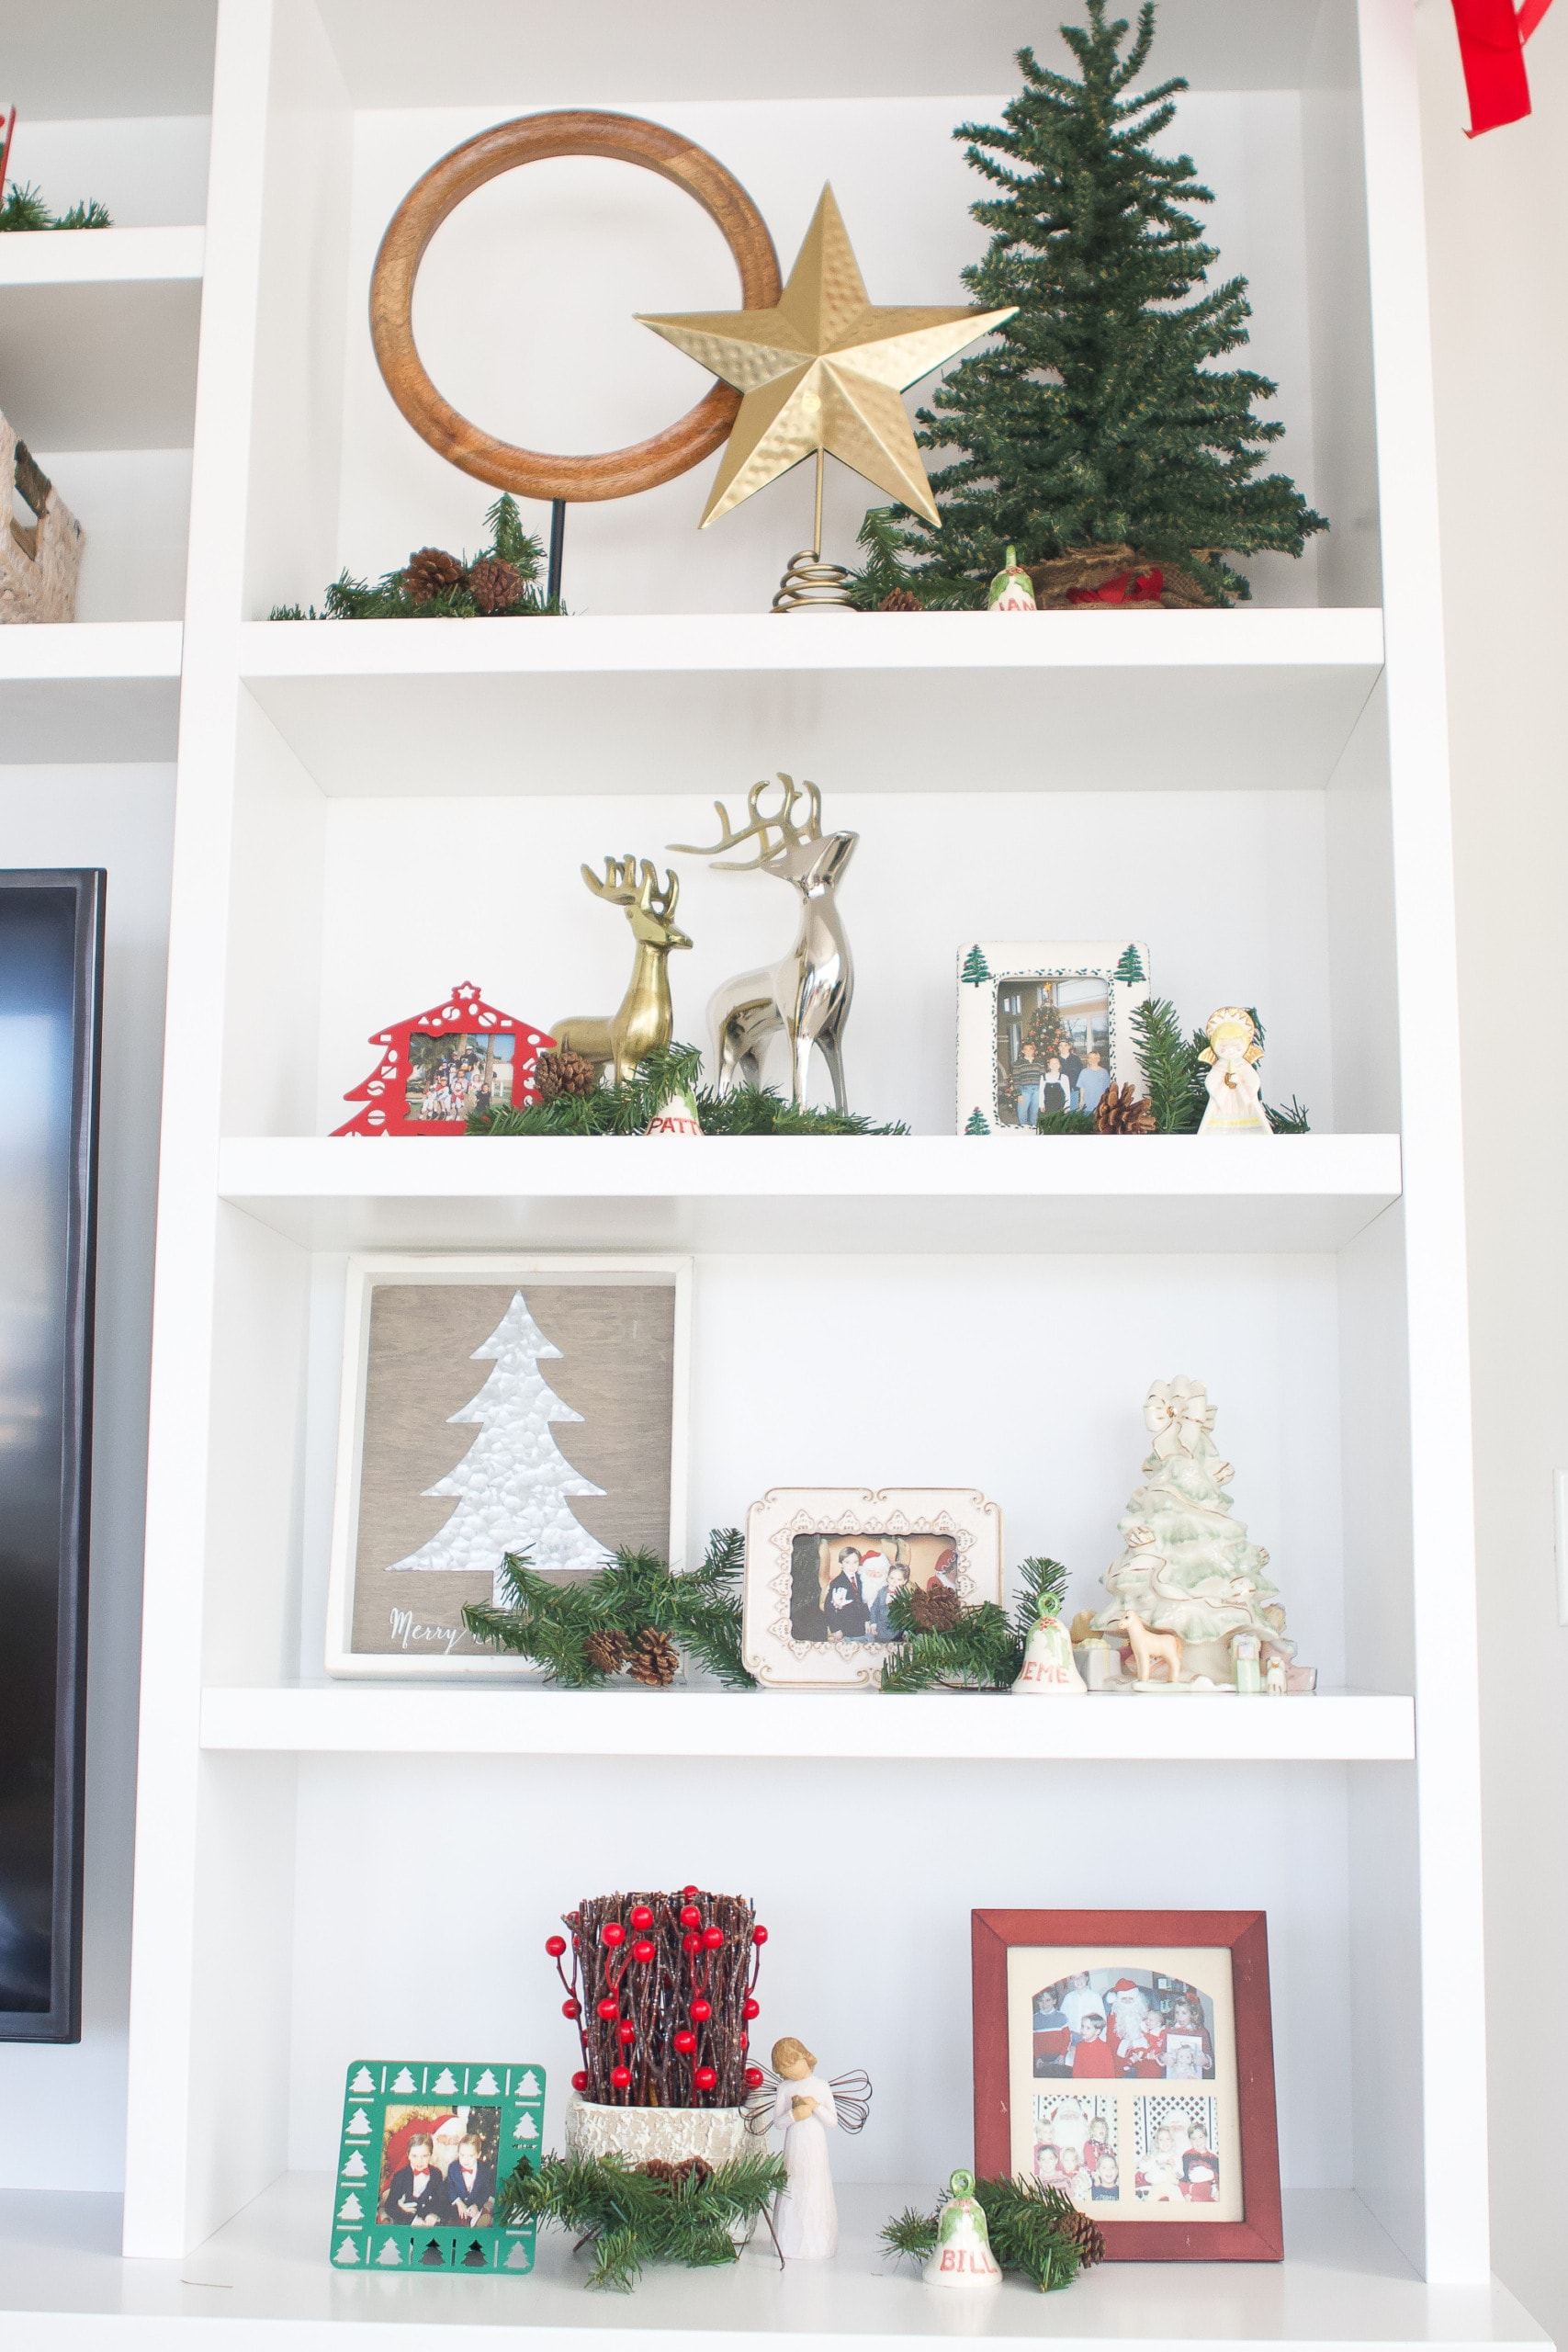 Add greenery to your shelves